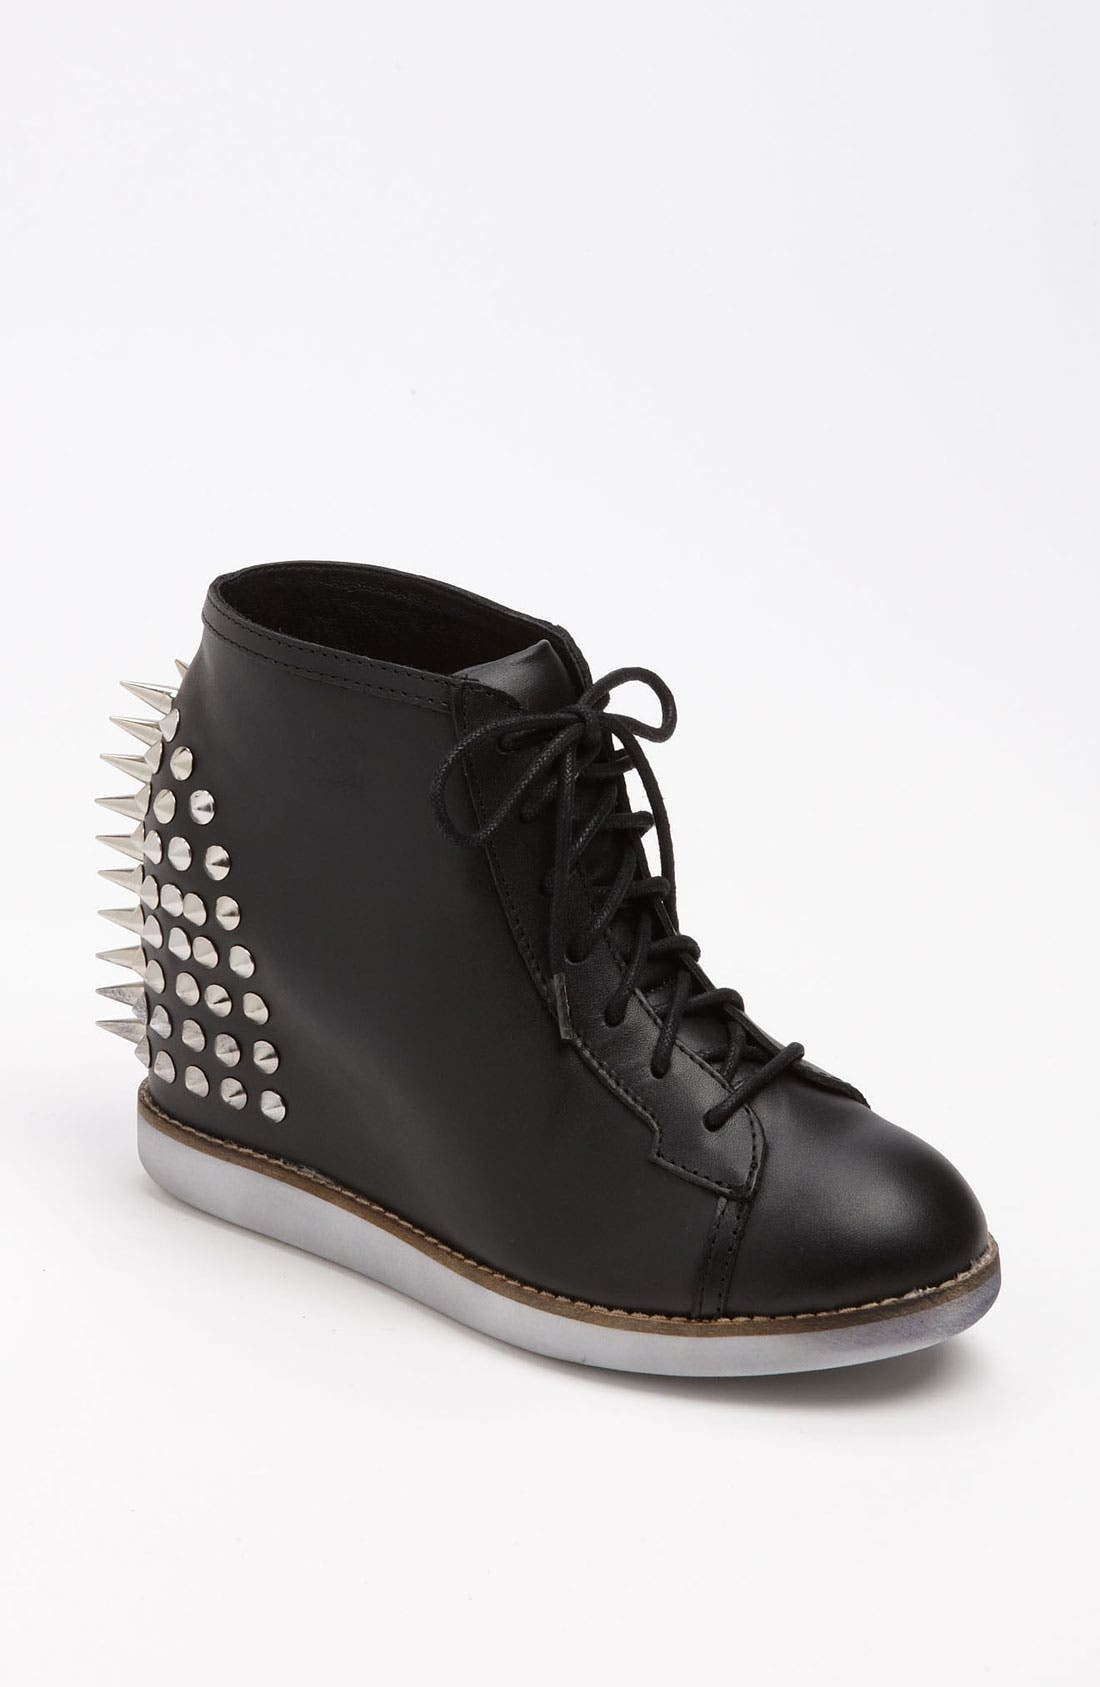 Alternate Image 1 Selected - Jeffrey Campbell 'Edea Spiked' Sneaker